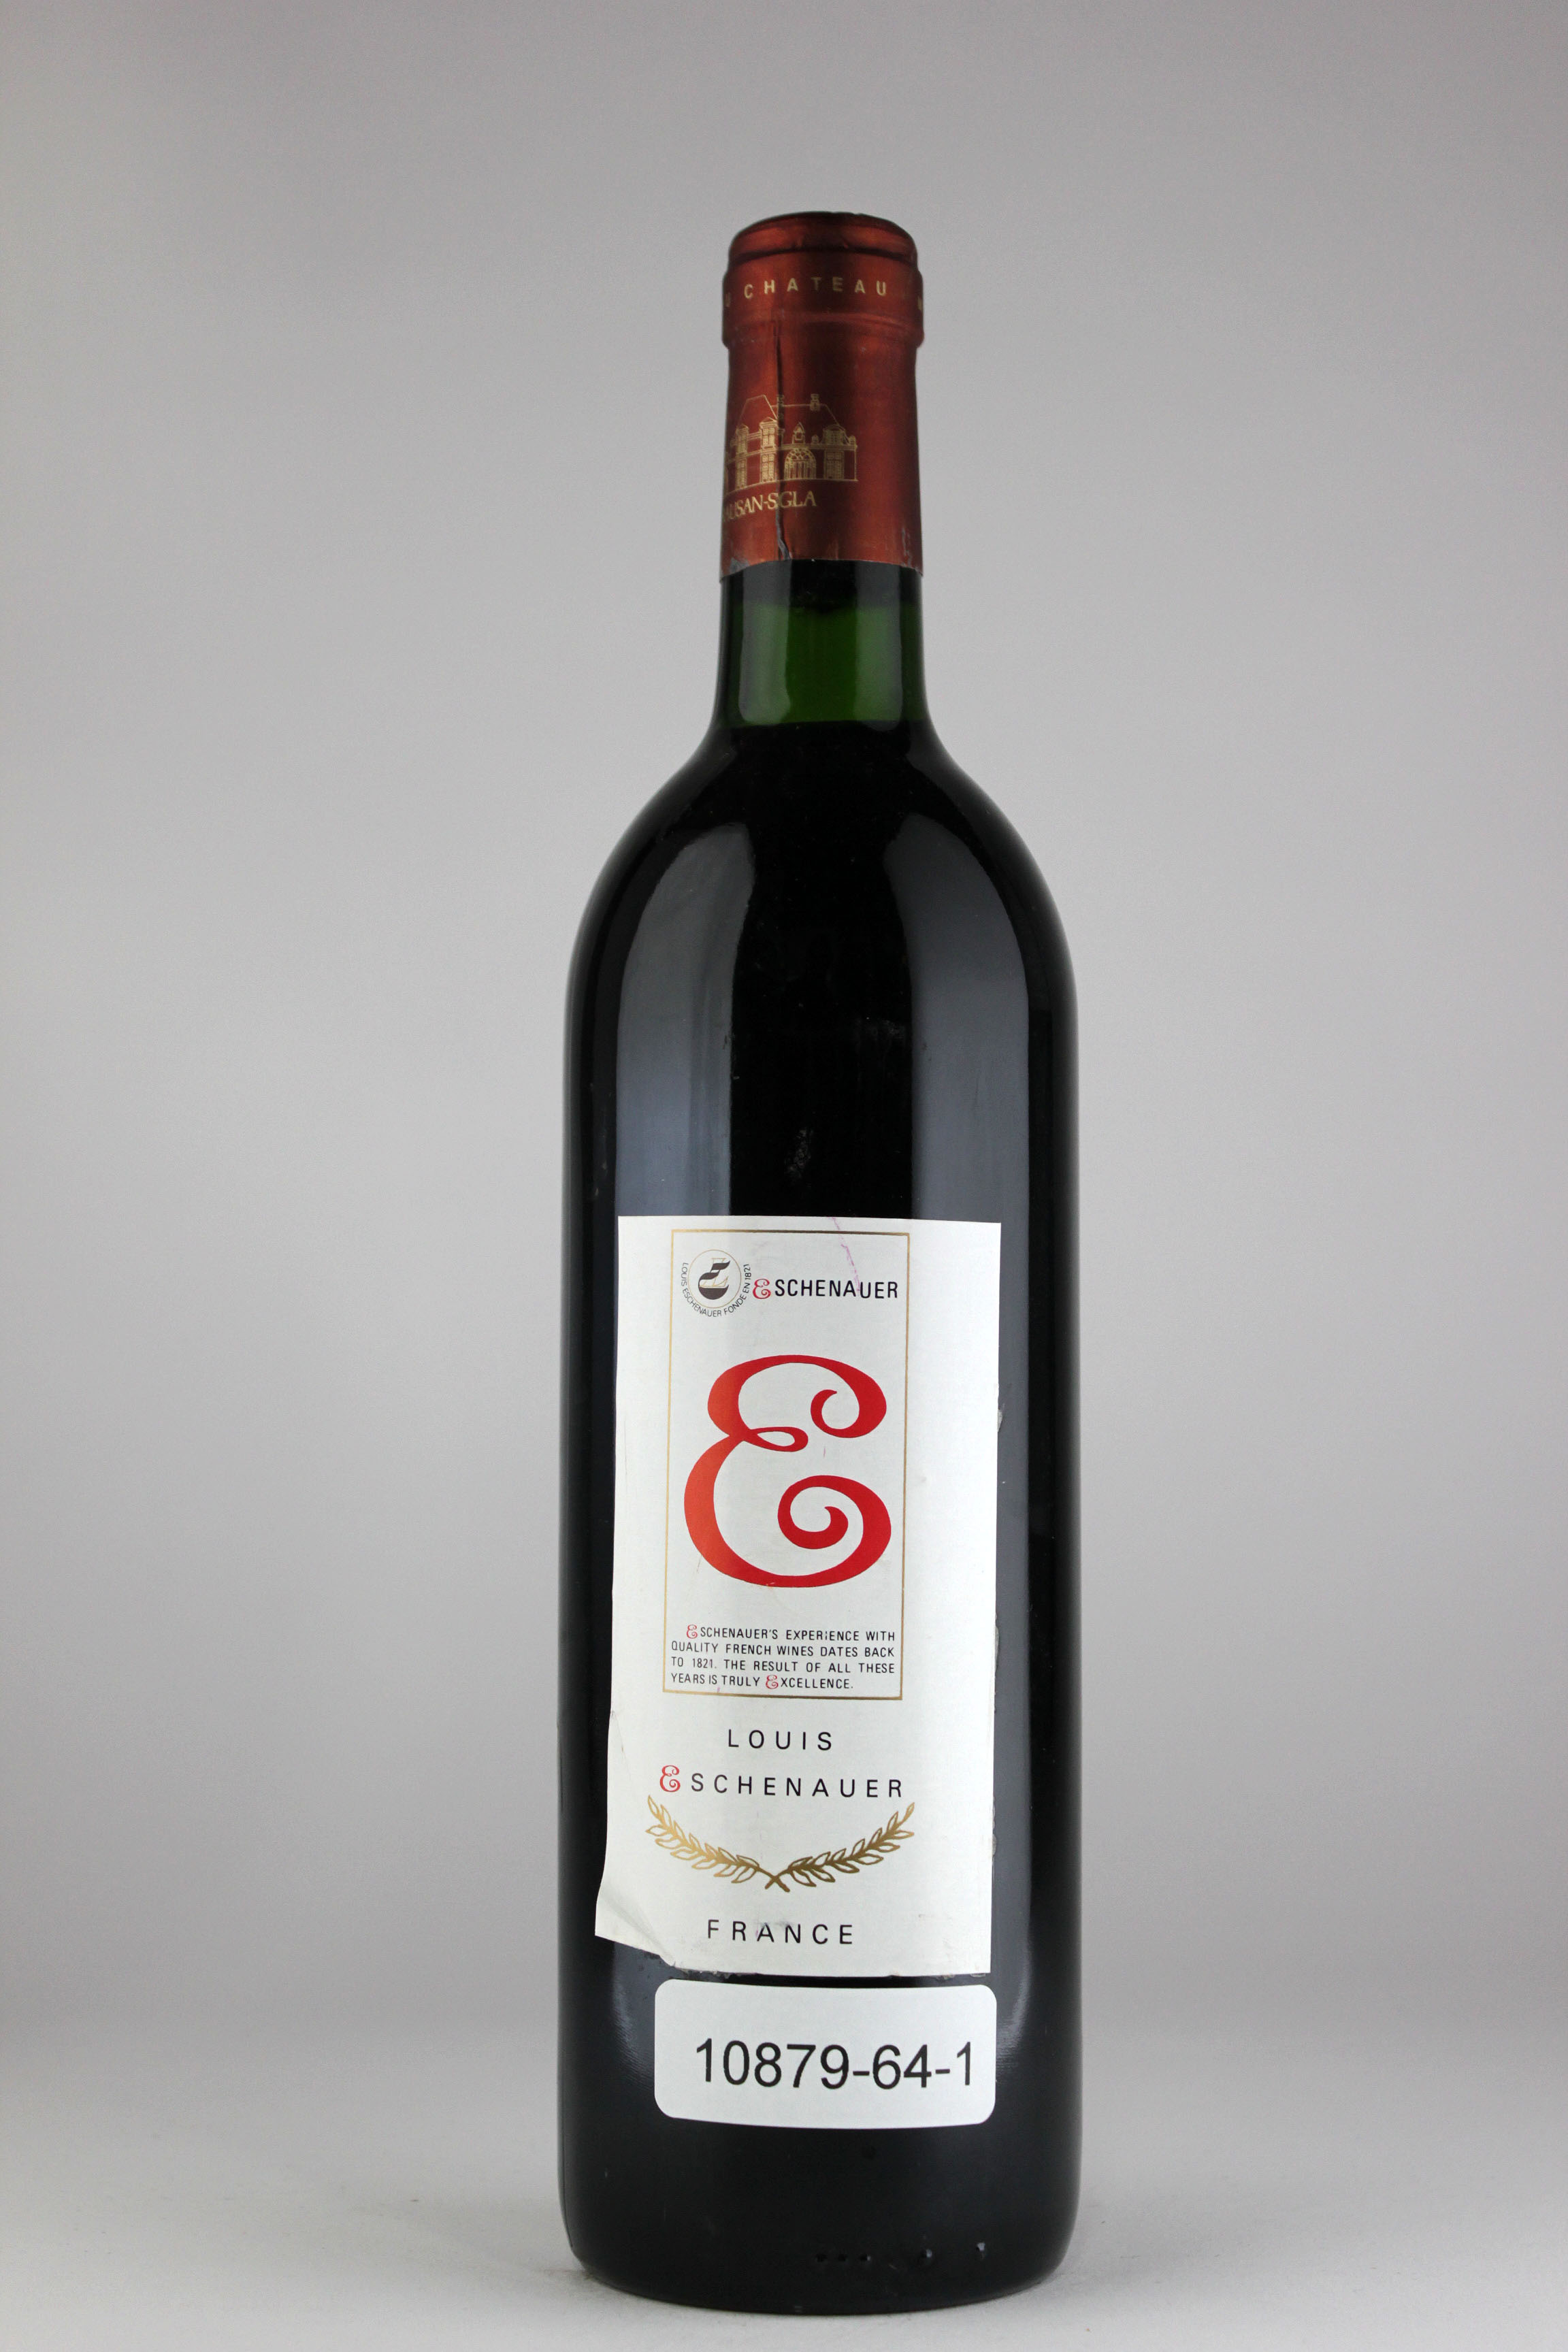 1986 Rauzan Segla - 750 mL - Buy Online At IronGate Wine - 23078